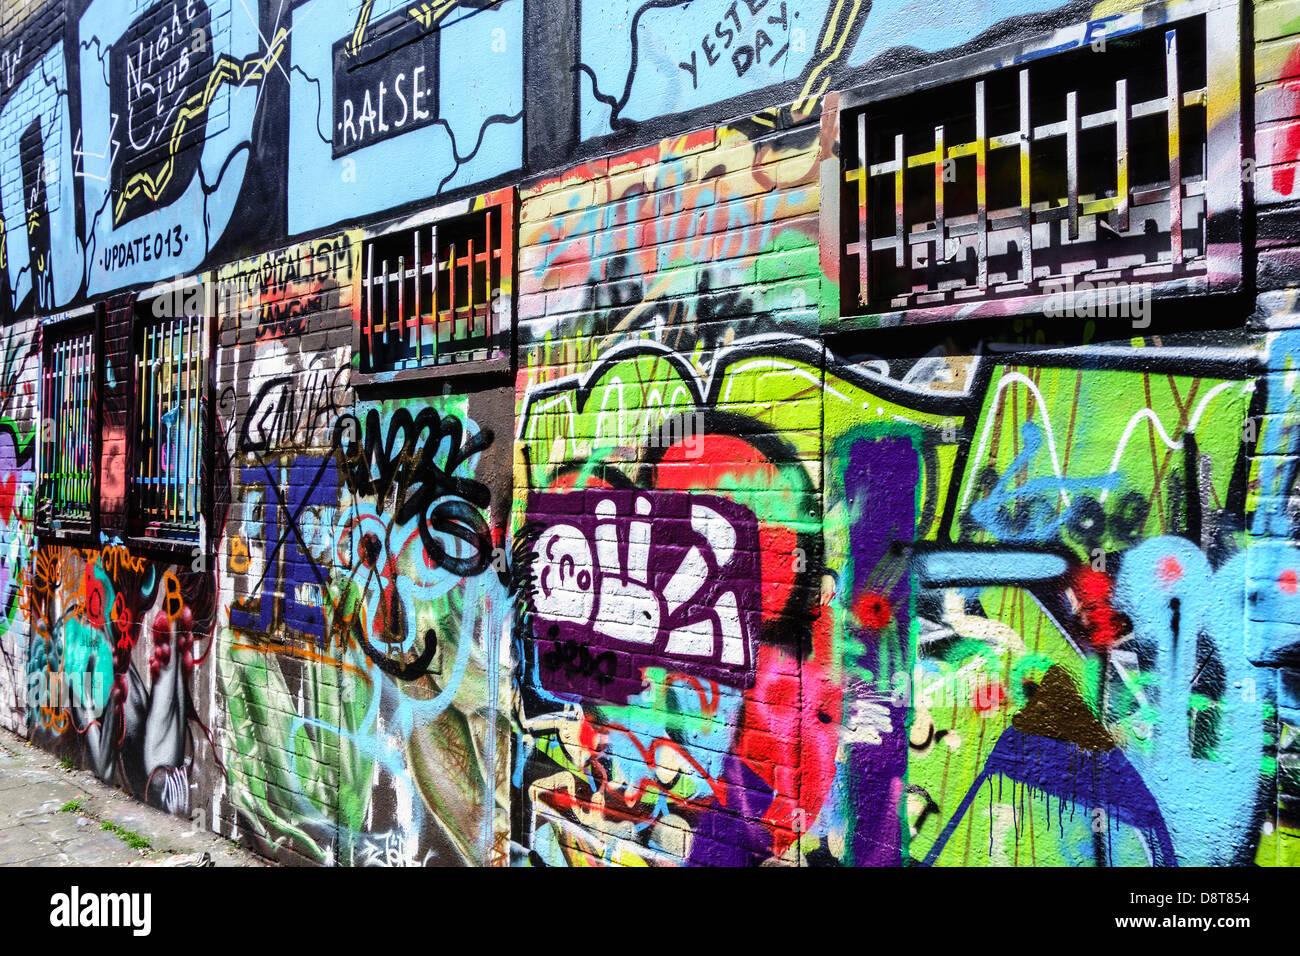 U2 graffiti wall - Colourful Graffiti In Alley On Wall Of Building In Town Stock Image